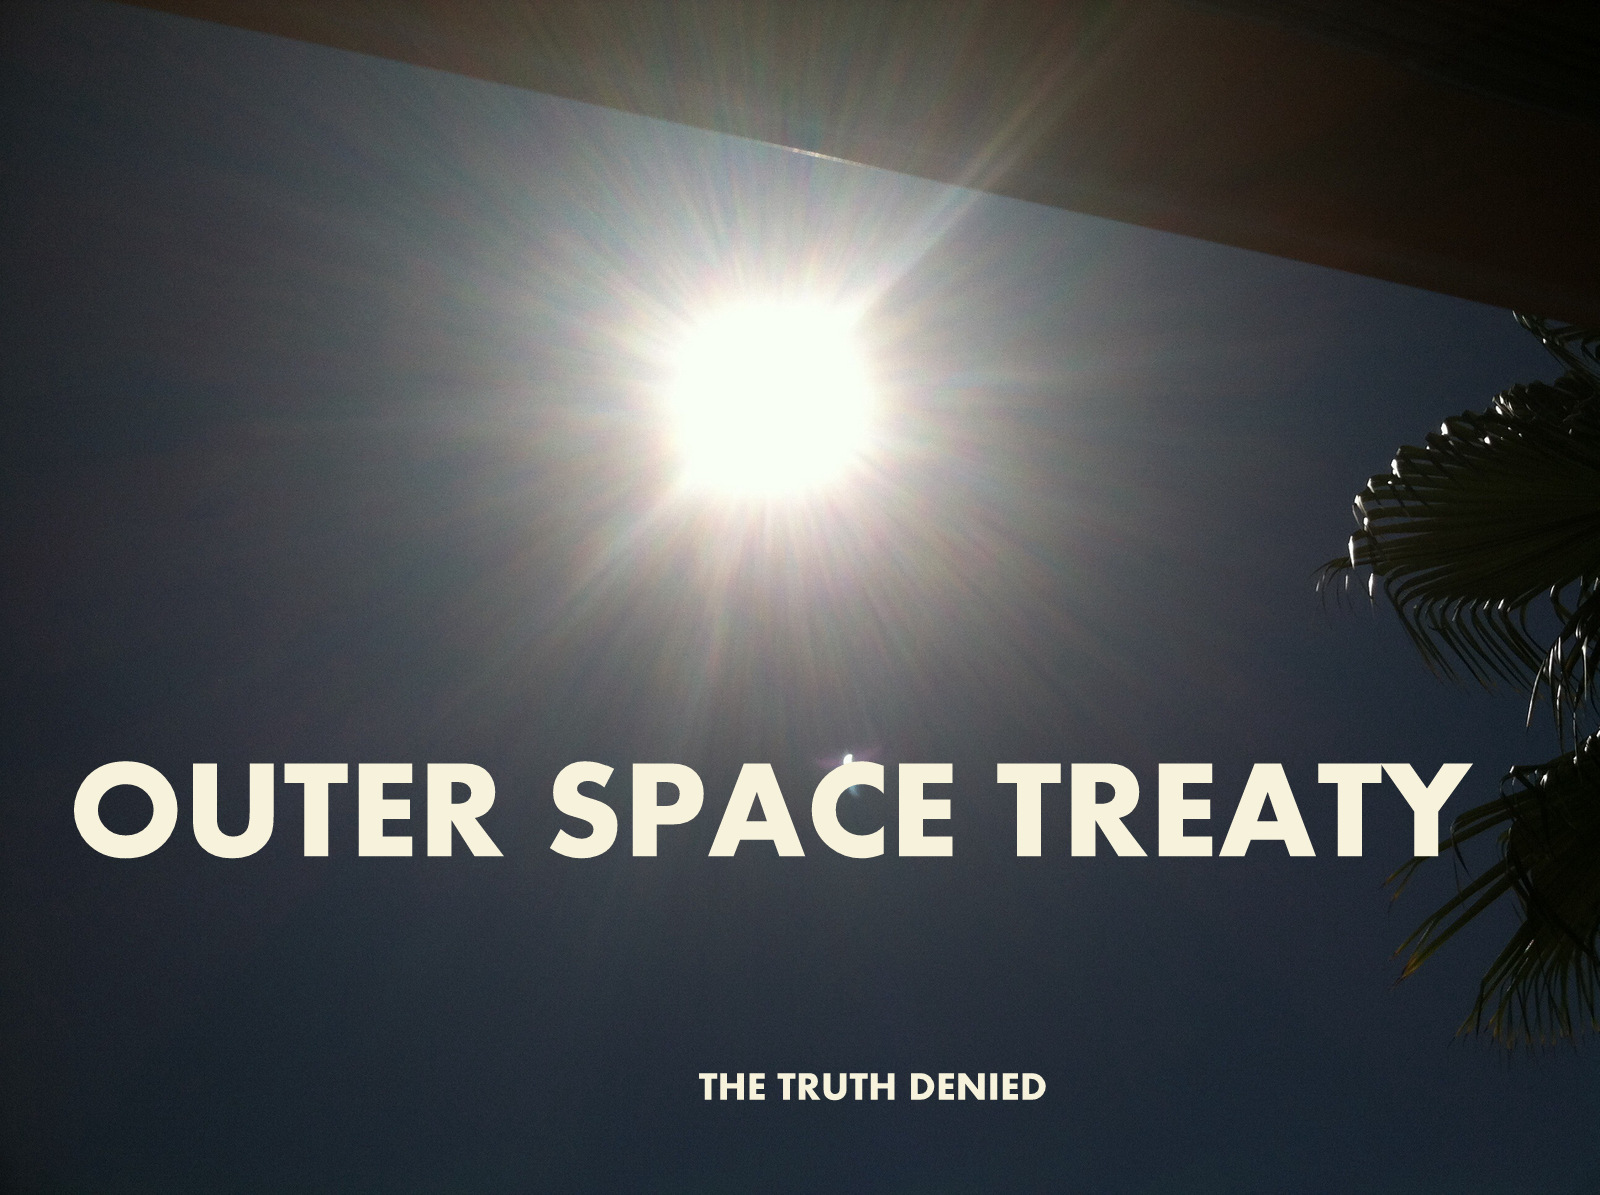 Outer Space Treaty